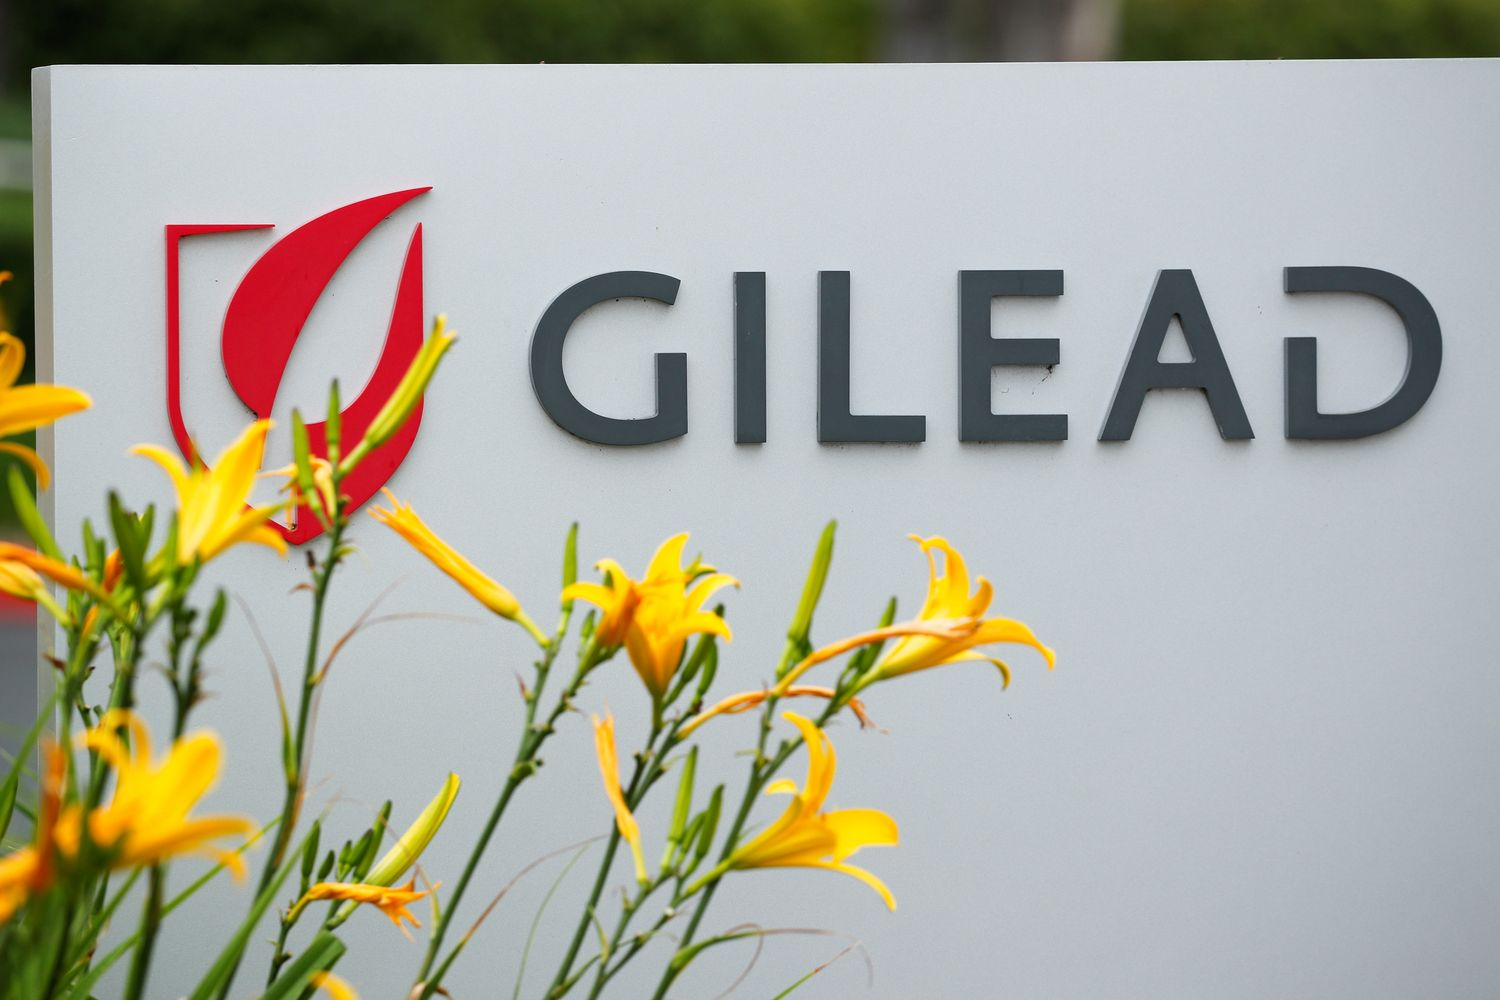 Gilead Sciences Inc pharmaceutical company is seen after they announced a Phase 3 Trial of the investigational antiviral drug Remdesivir in patients with severe coronavirus disease in Oceanside, California, on April 29. (Reuters photo)